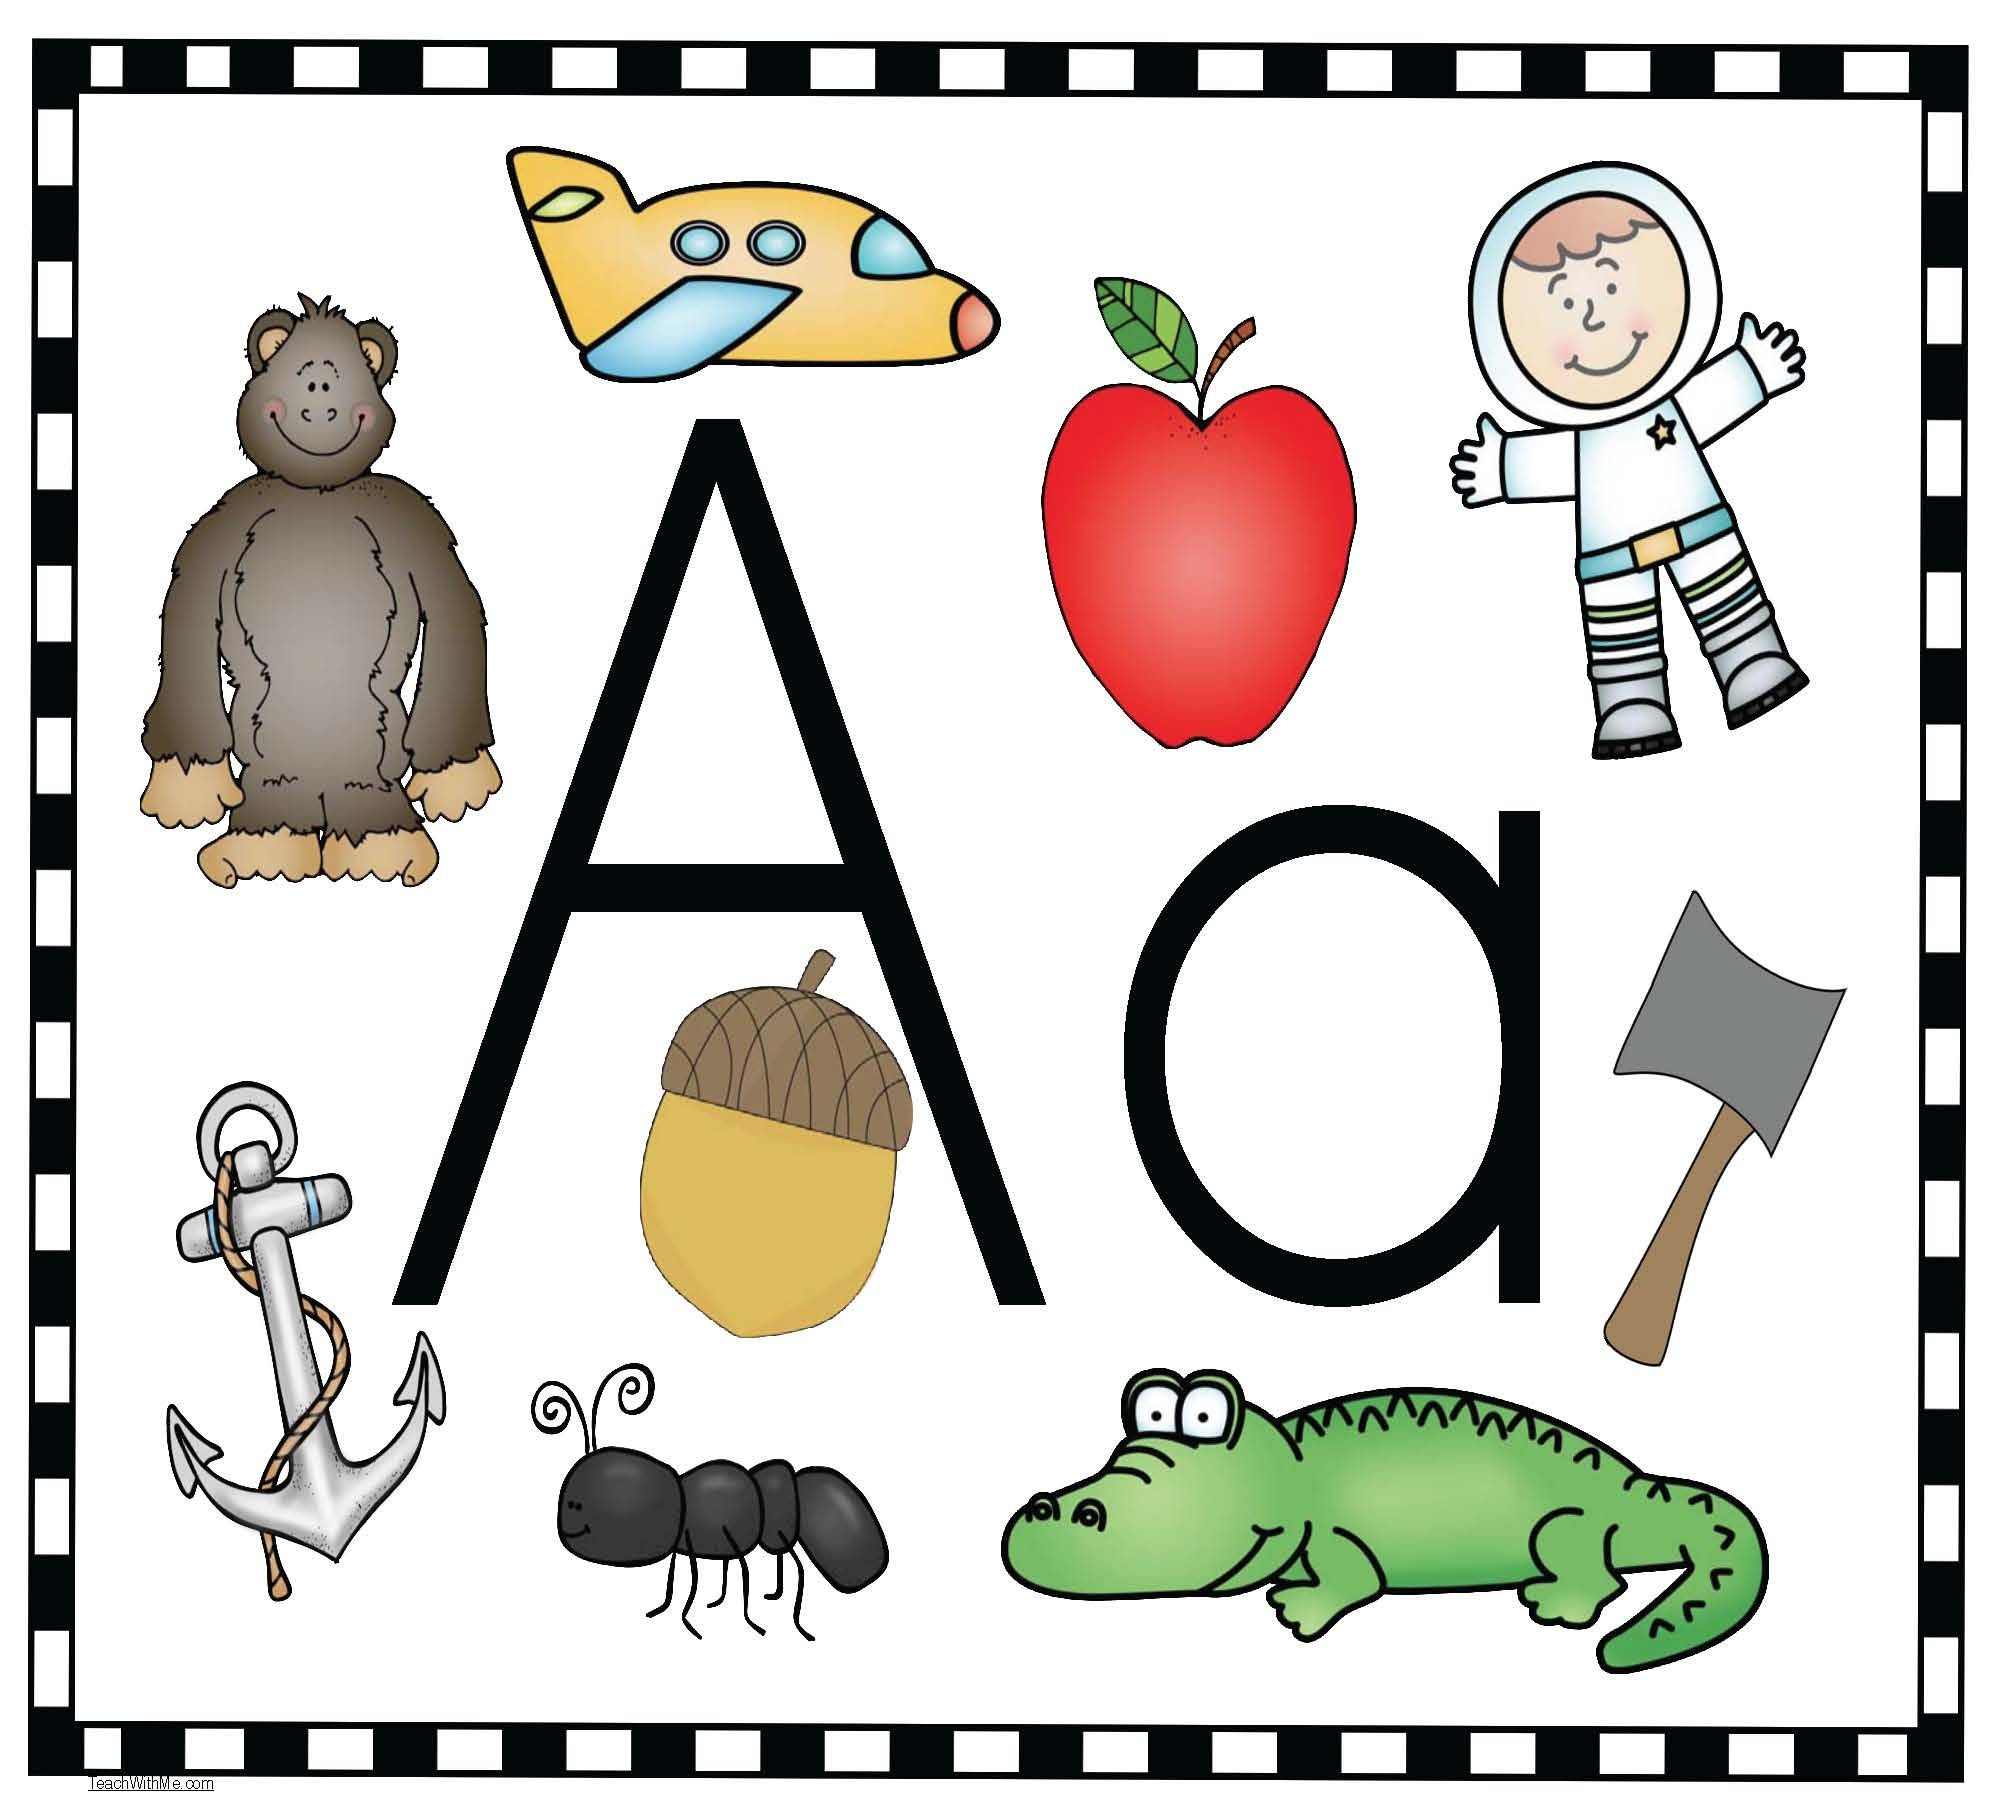 Alphabet Activities Alphabet activities, Alphabet poster